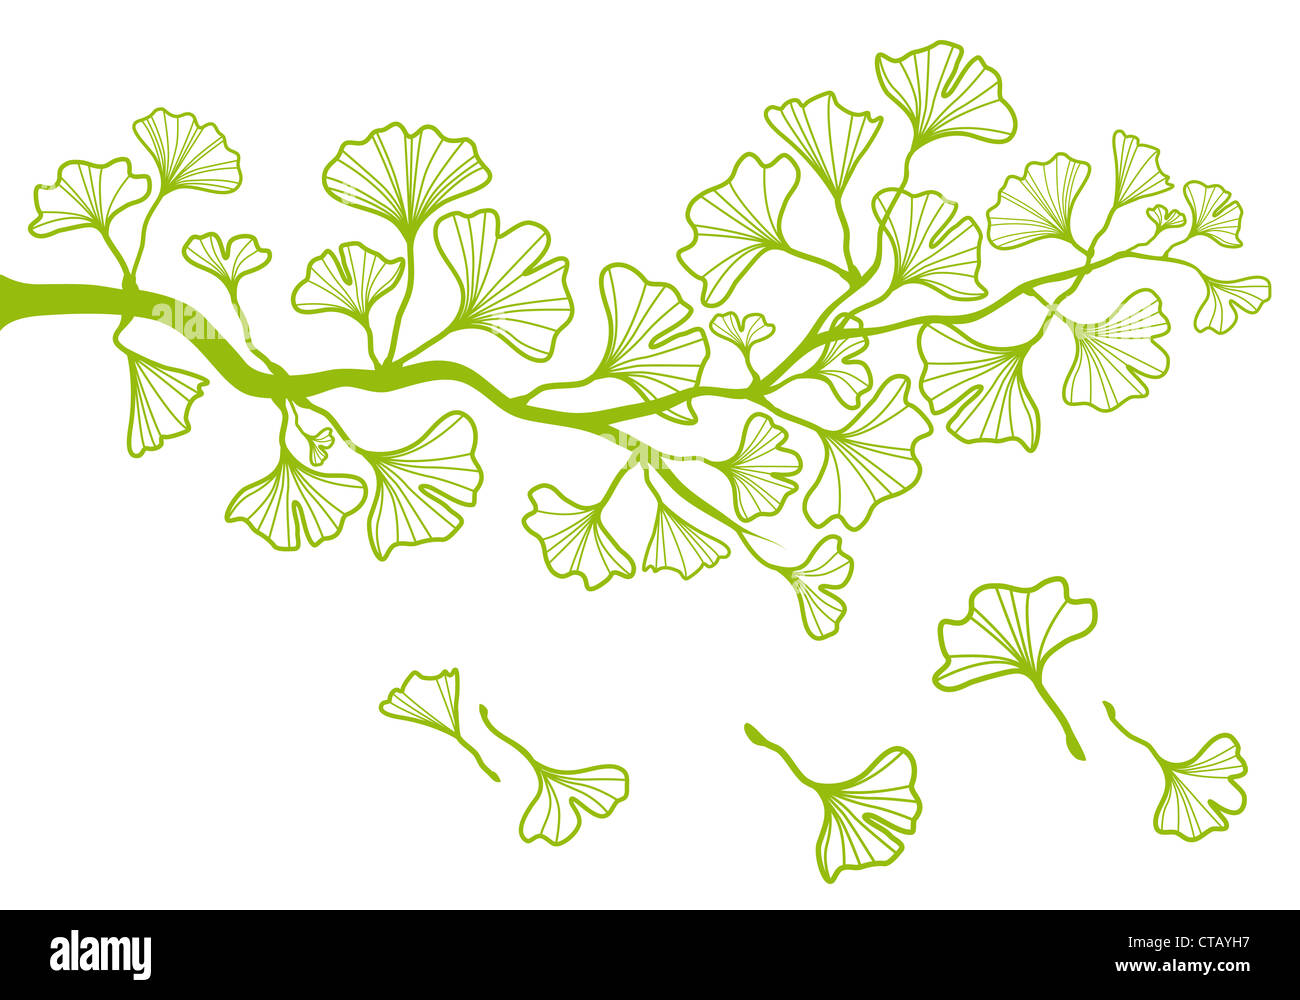 Ginkgo Branch Stock Photos & Ginkgo Branch Stock Images - Alamy